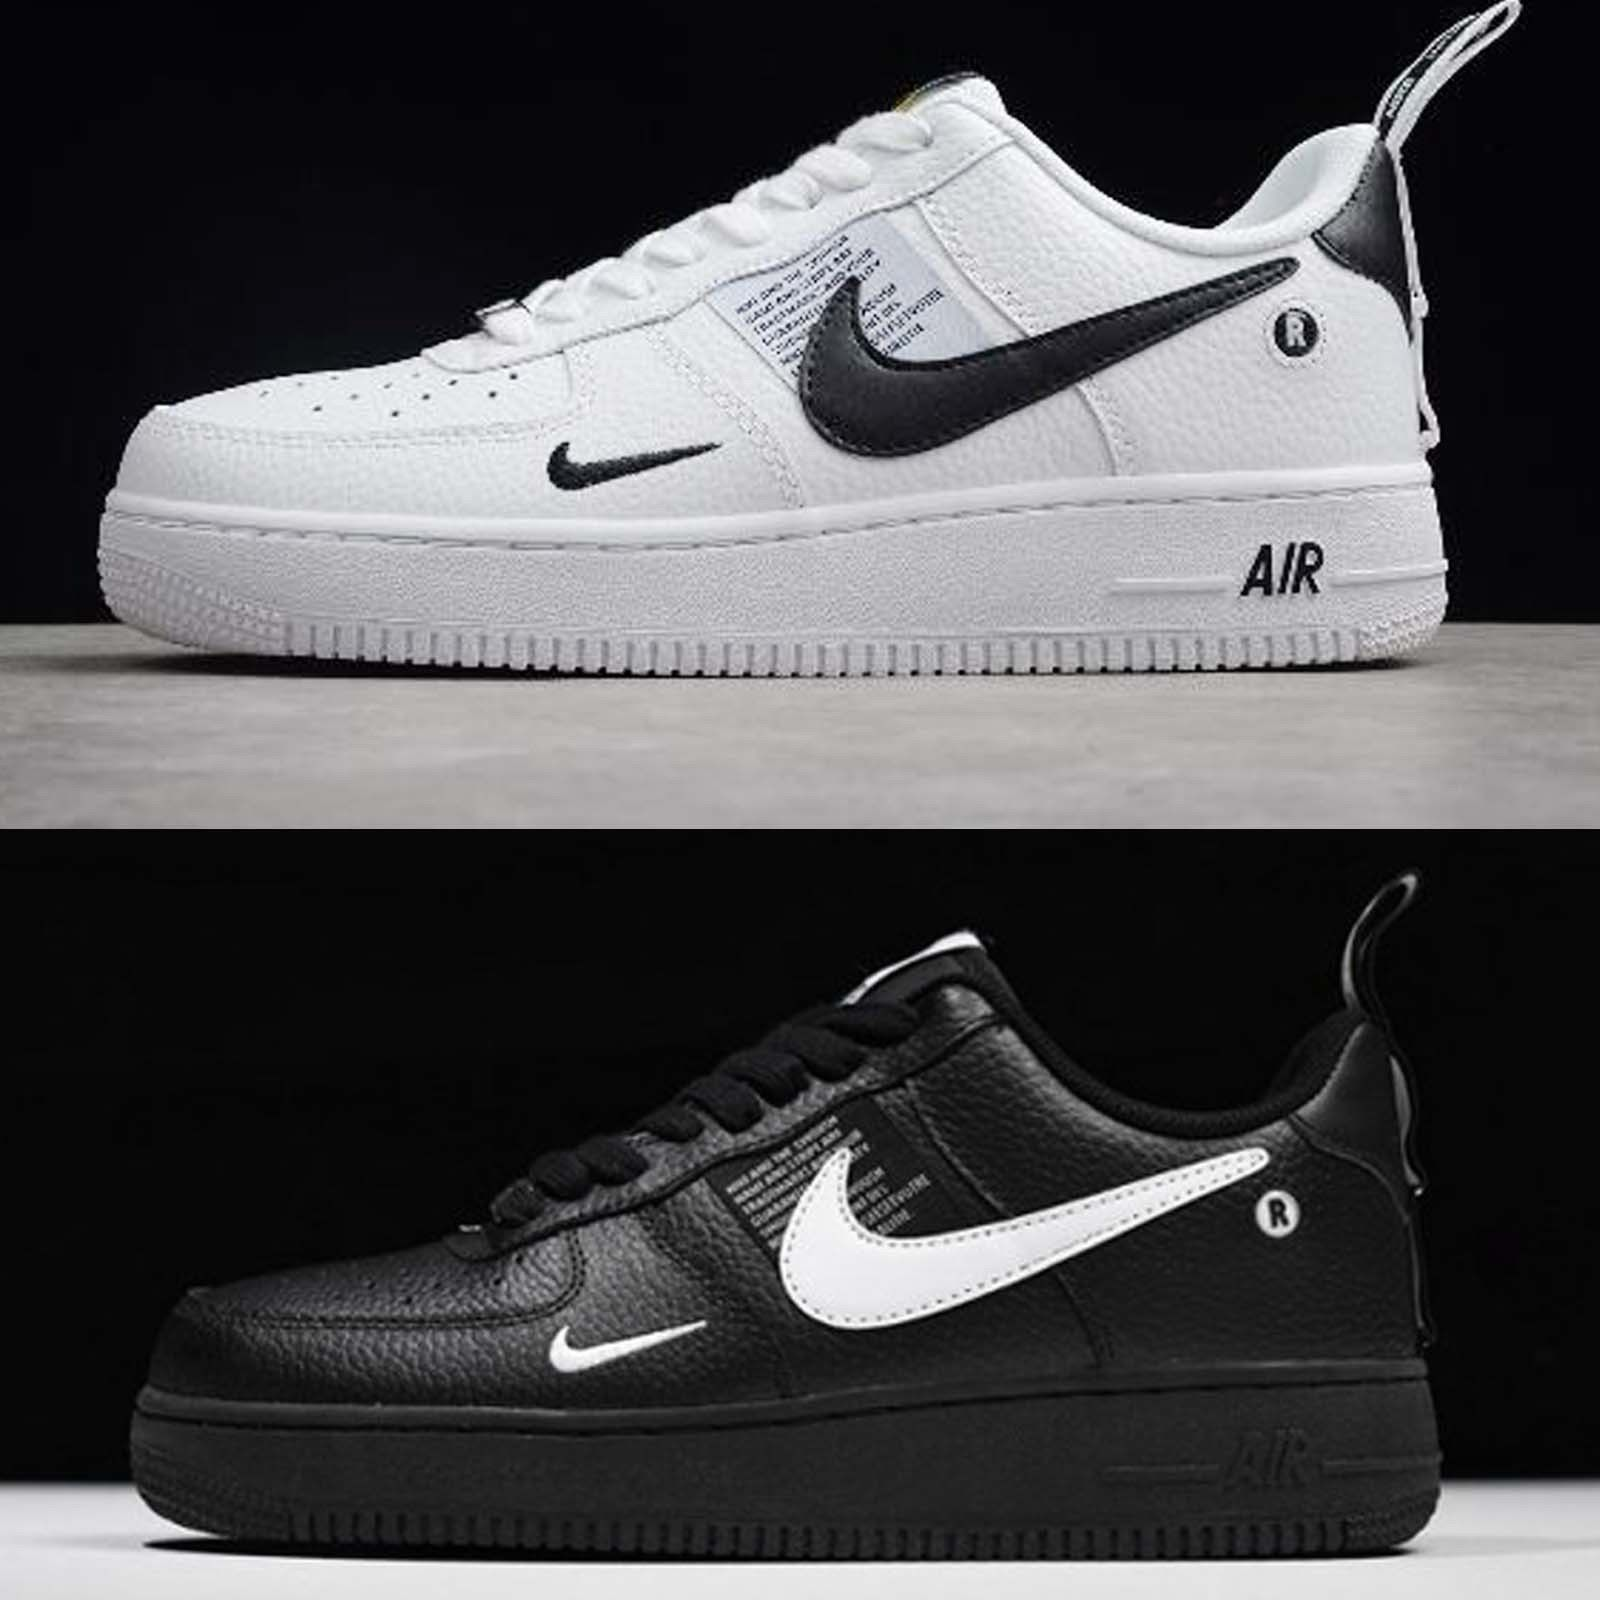 Nike Air Force 1 Mid Utility White Black Casual Shoes To Buy